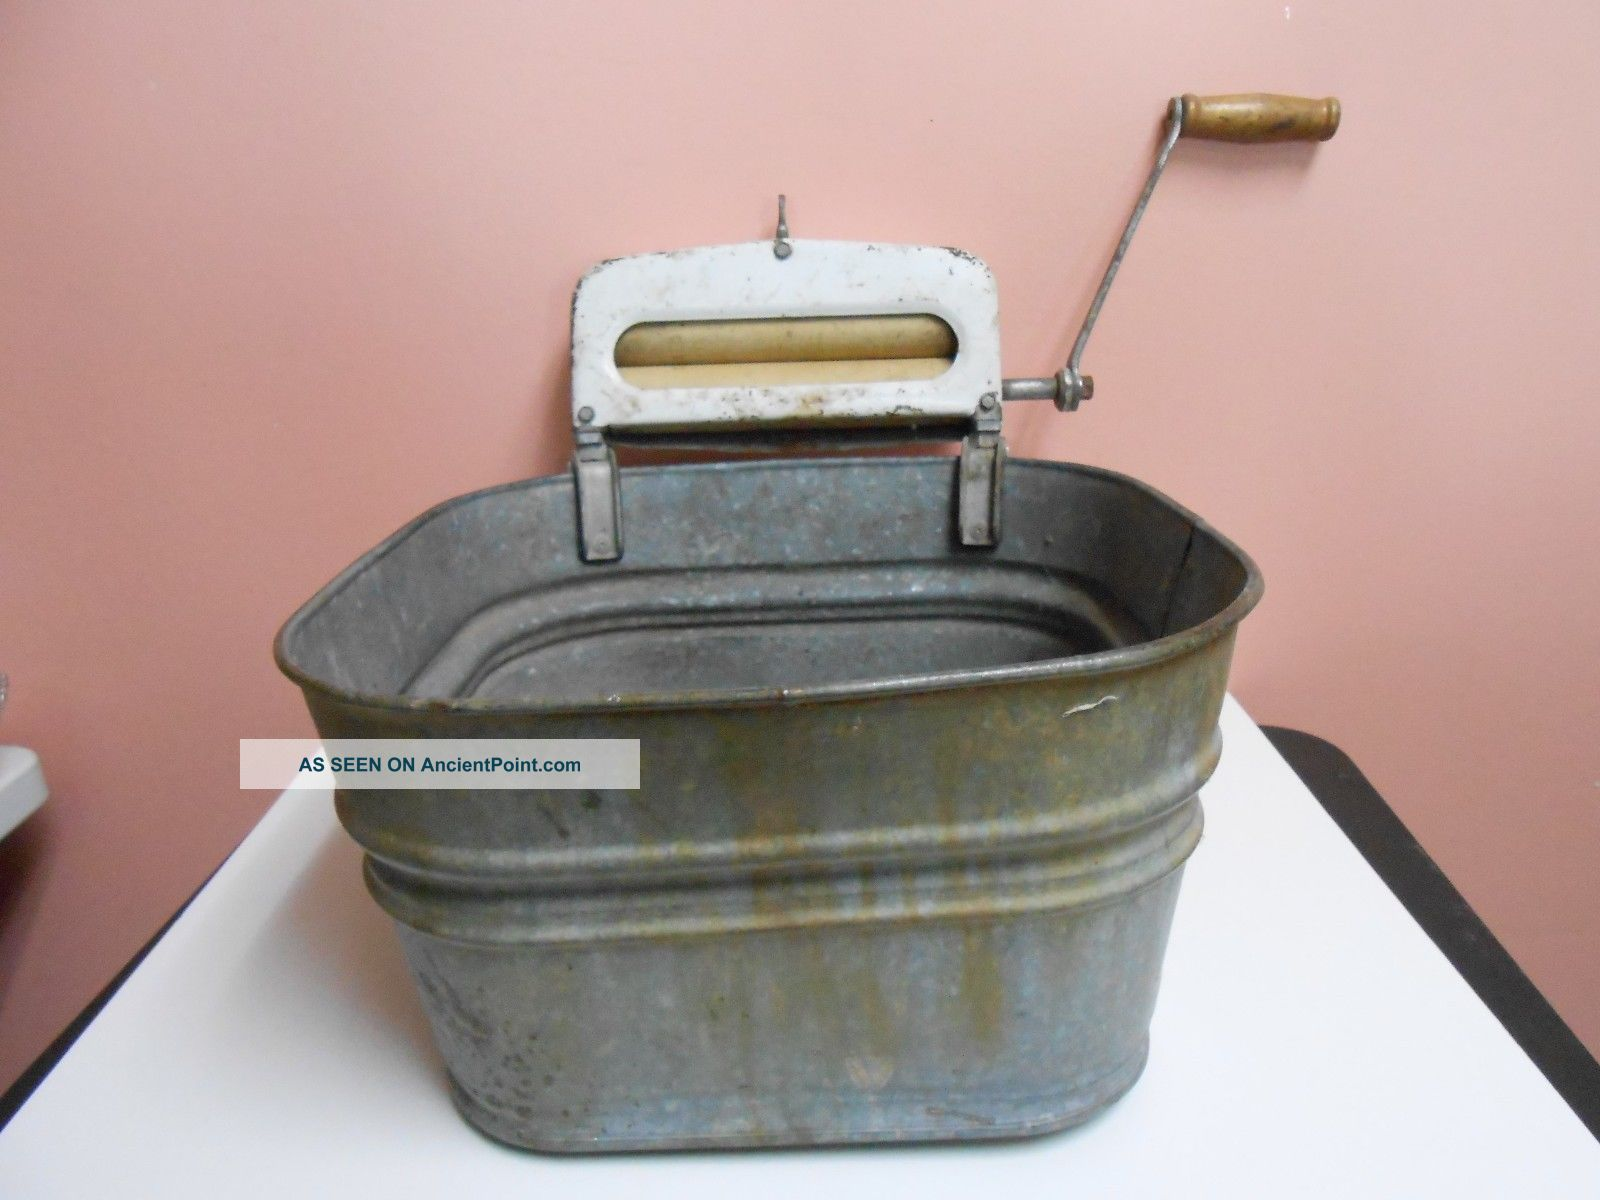 Vintage Antique Galvanized Steel Wash Tub With Hand Wringer 6a Pat.  No.  1935840 Clothing Wringers photo